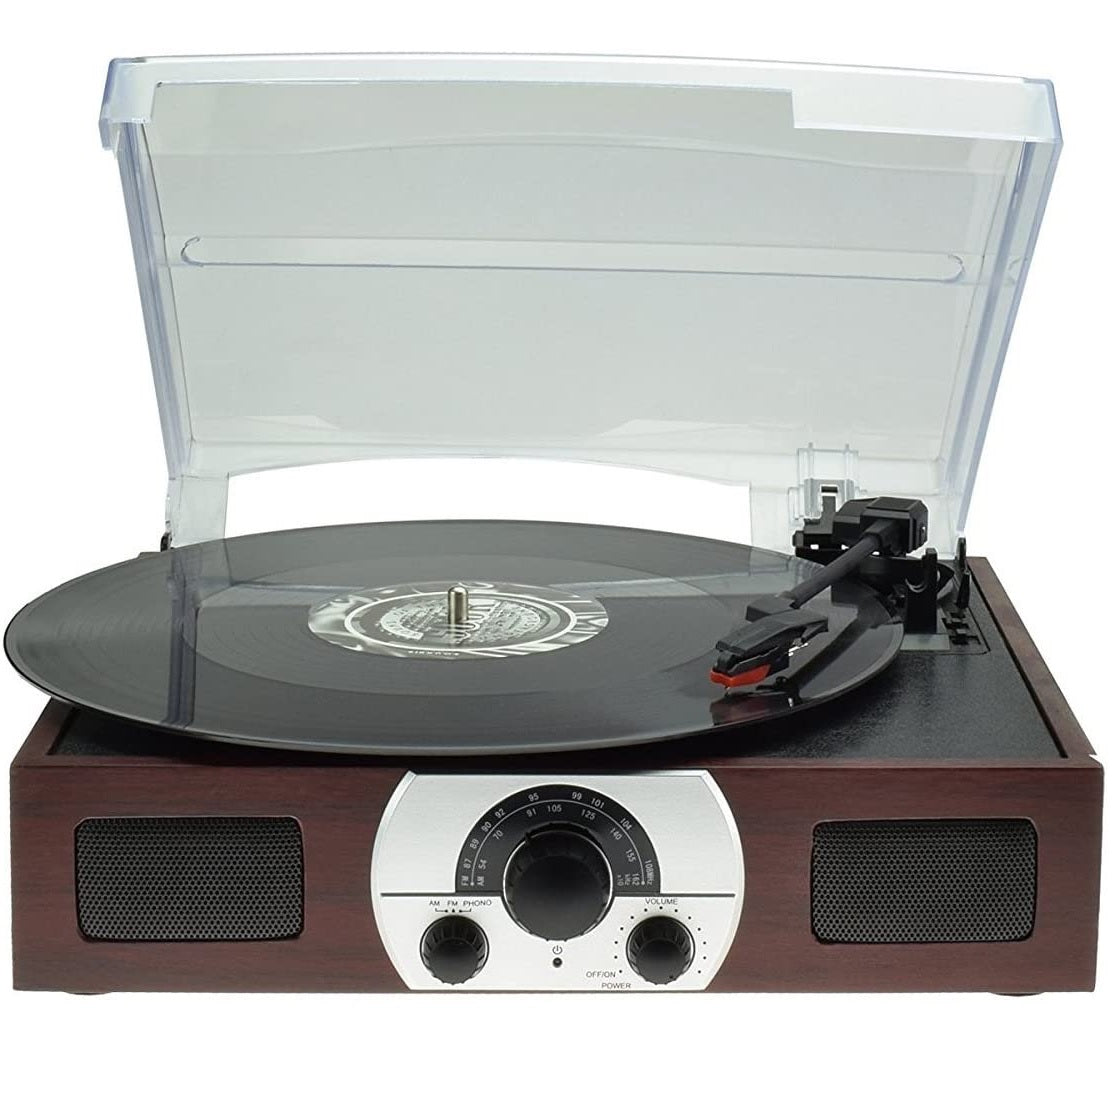 Digitnow M606 Wooden 3 Speed Retro Turntable with Built in Dynamic Stereo Speaker Preowned